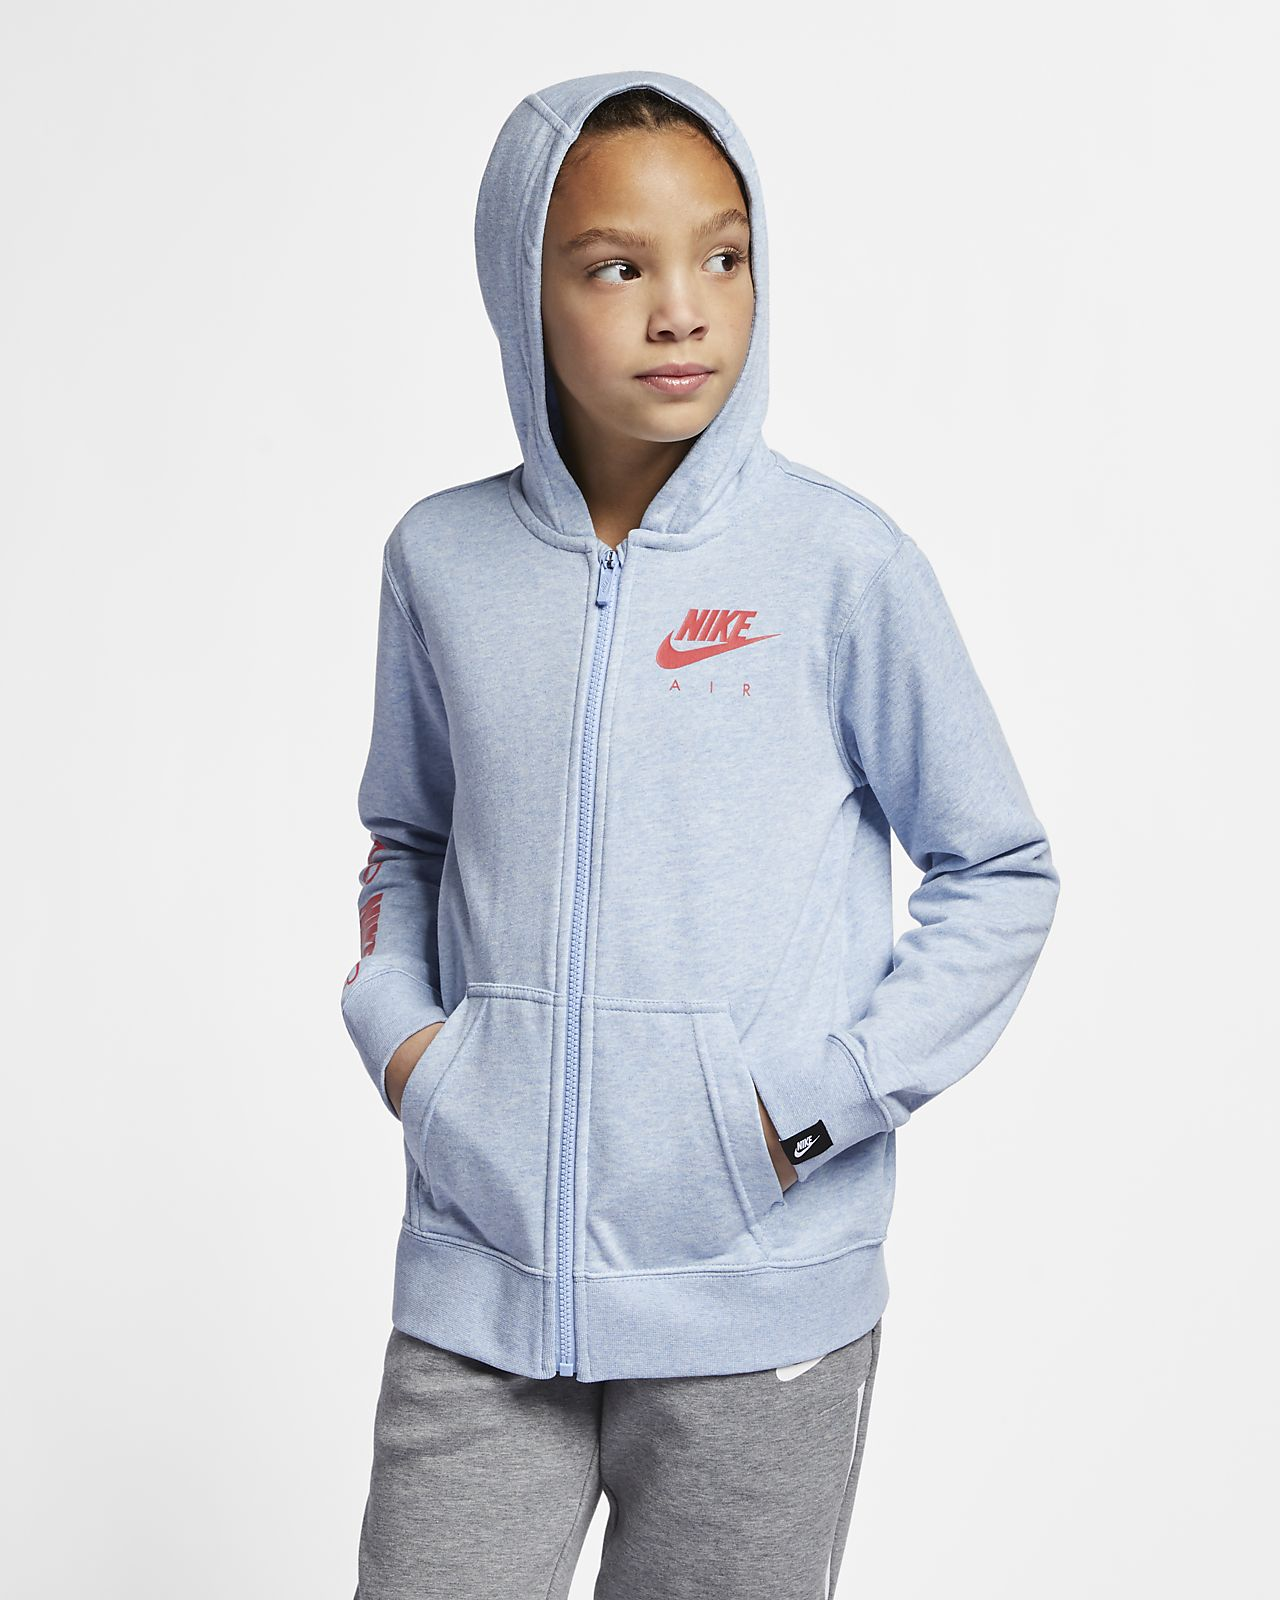 Nike Air Big Kids' (Girls') Full-Zip Hoodie